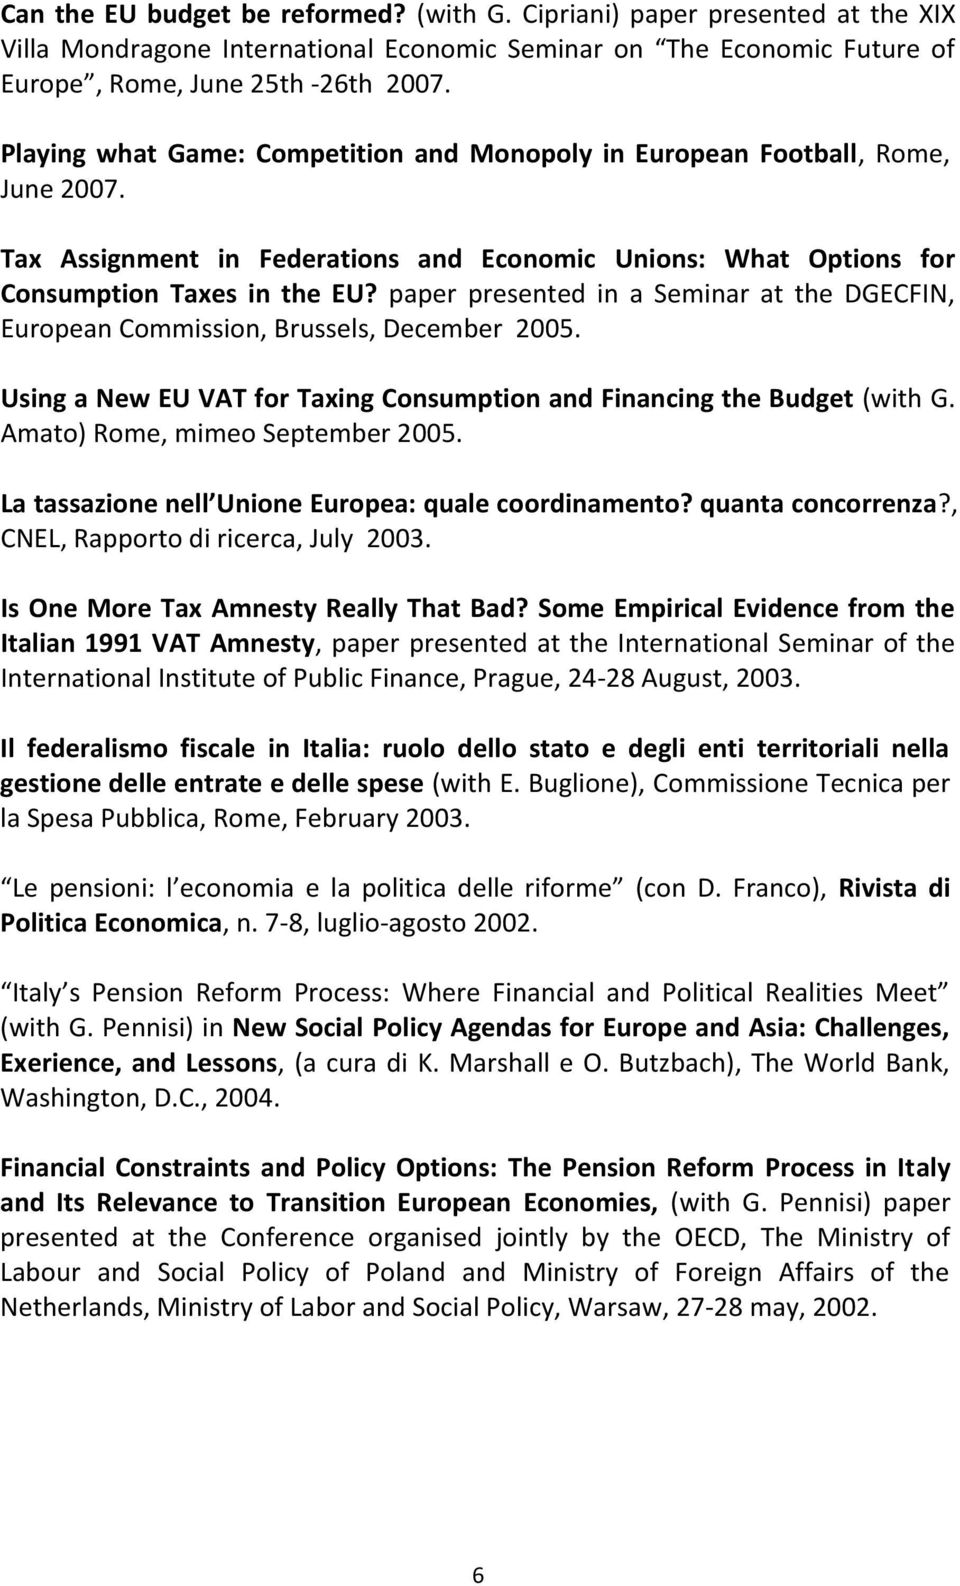 paper presented in a Seminar at the DGECFIN, European Commission, Brussels, December 2005. Using a New EU VAT for Taxing Consumption and Financing the Budget (with G.